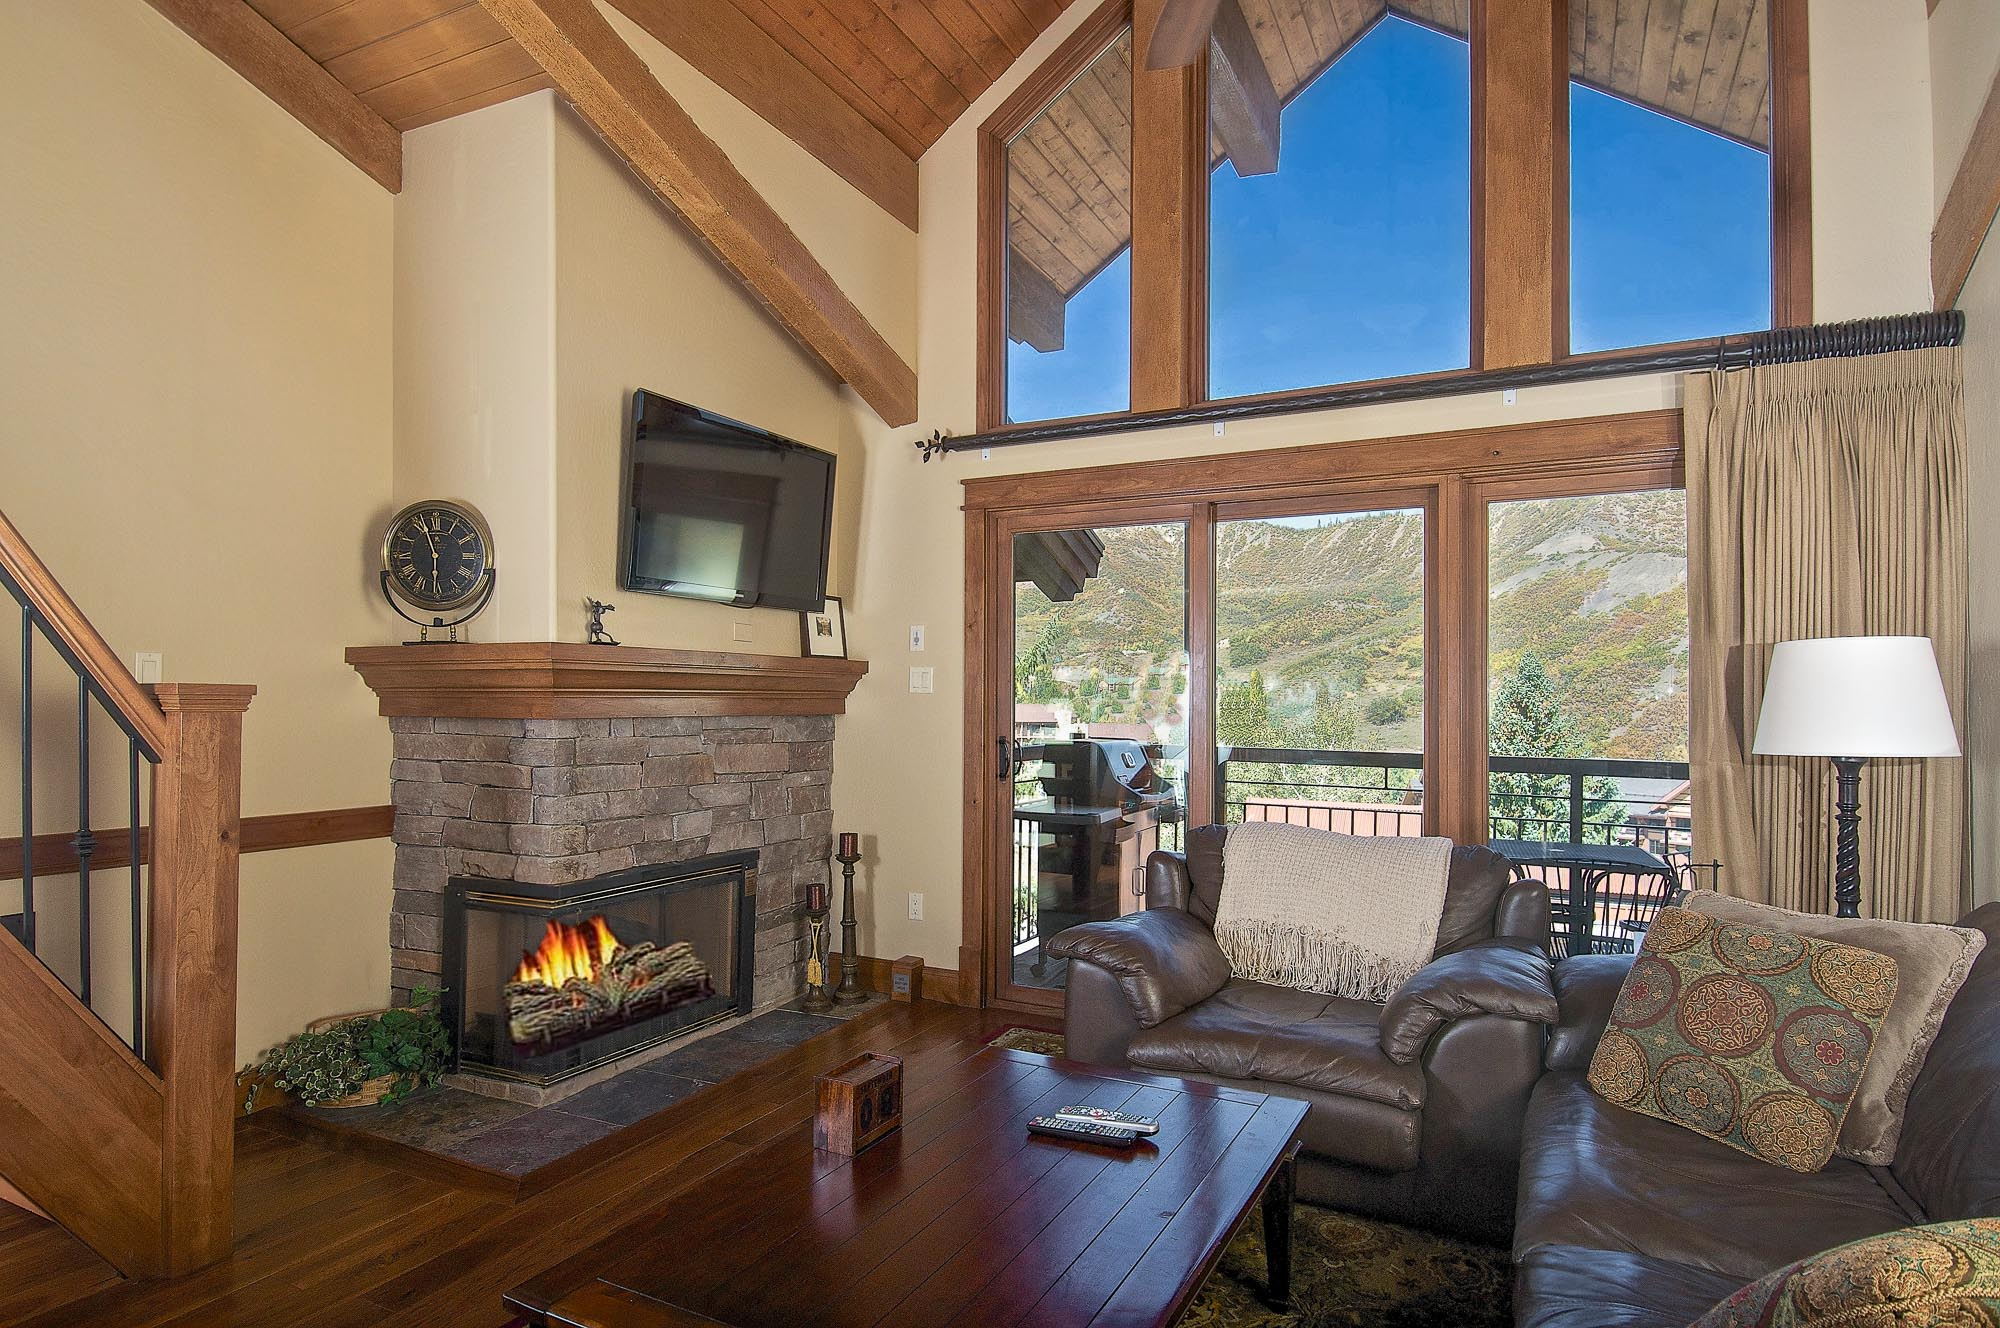 Nhà chung cư vì Bán tại The Location You Have Been Looking For! 400 Wood Road, Unit 2302 Snowmass Village, Colorado, 81615 Hoa Kỳ